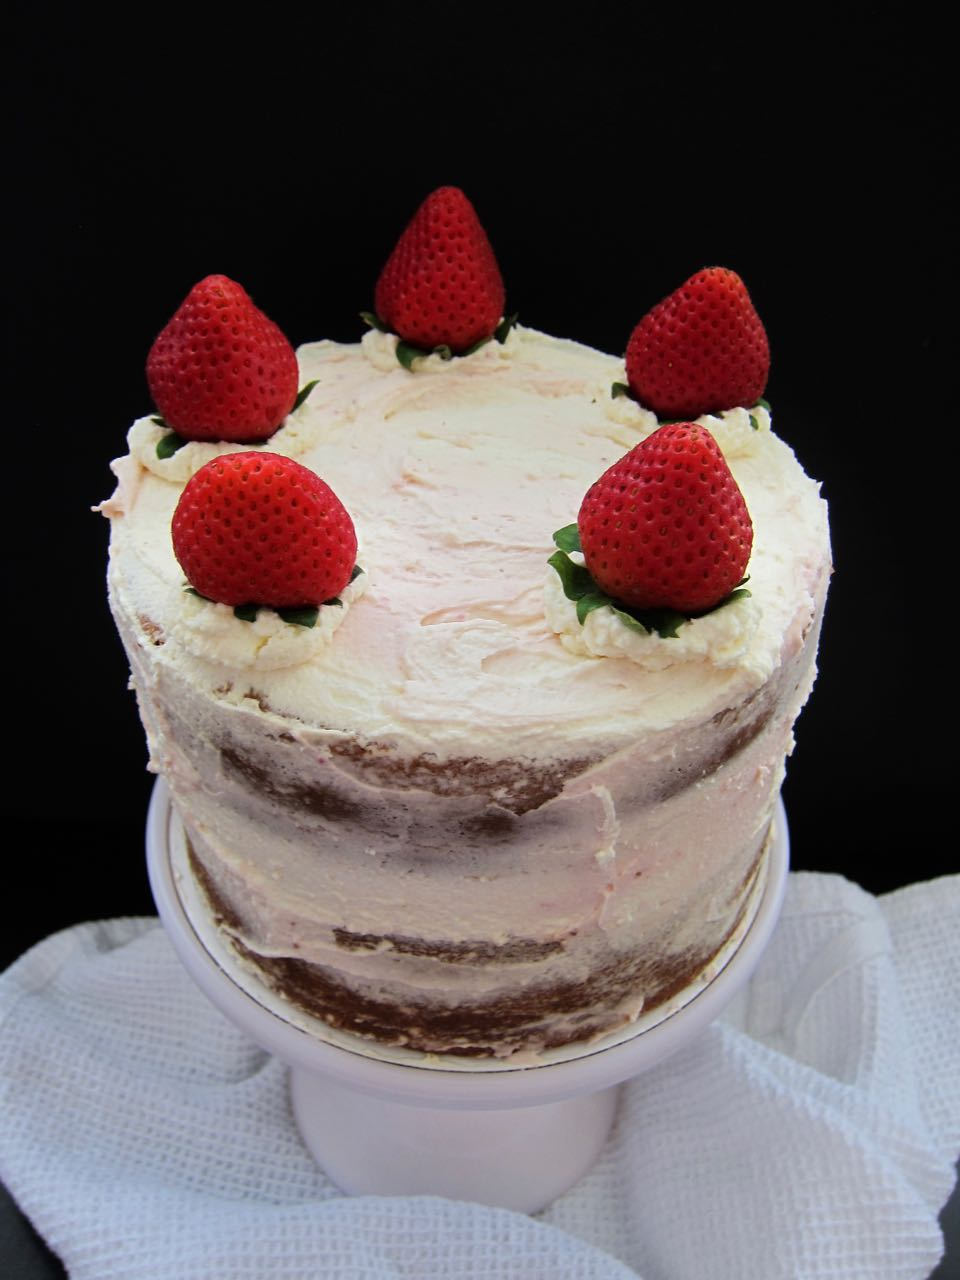 strawberries & cream cake